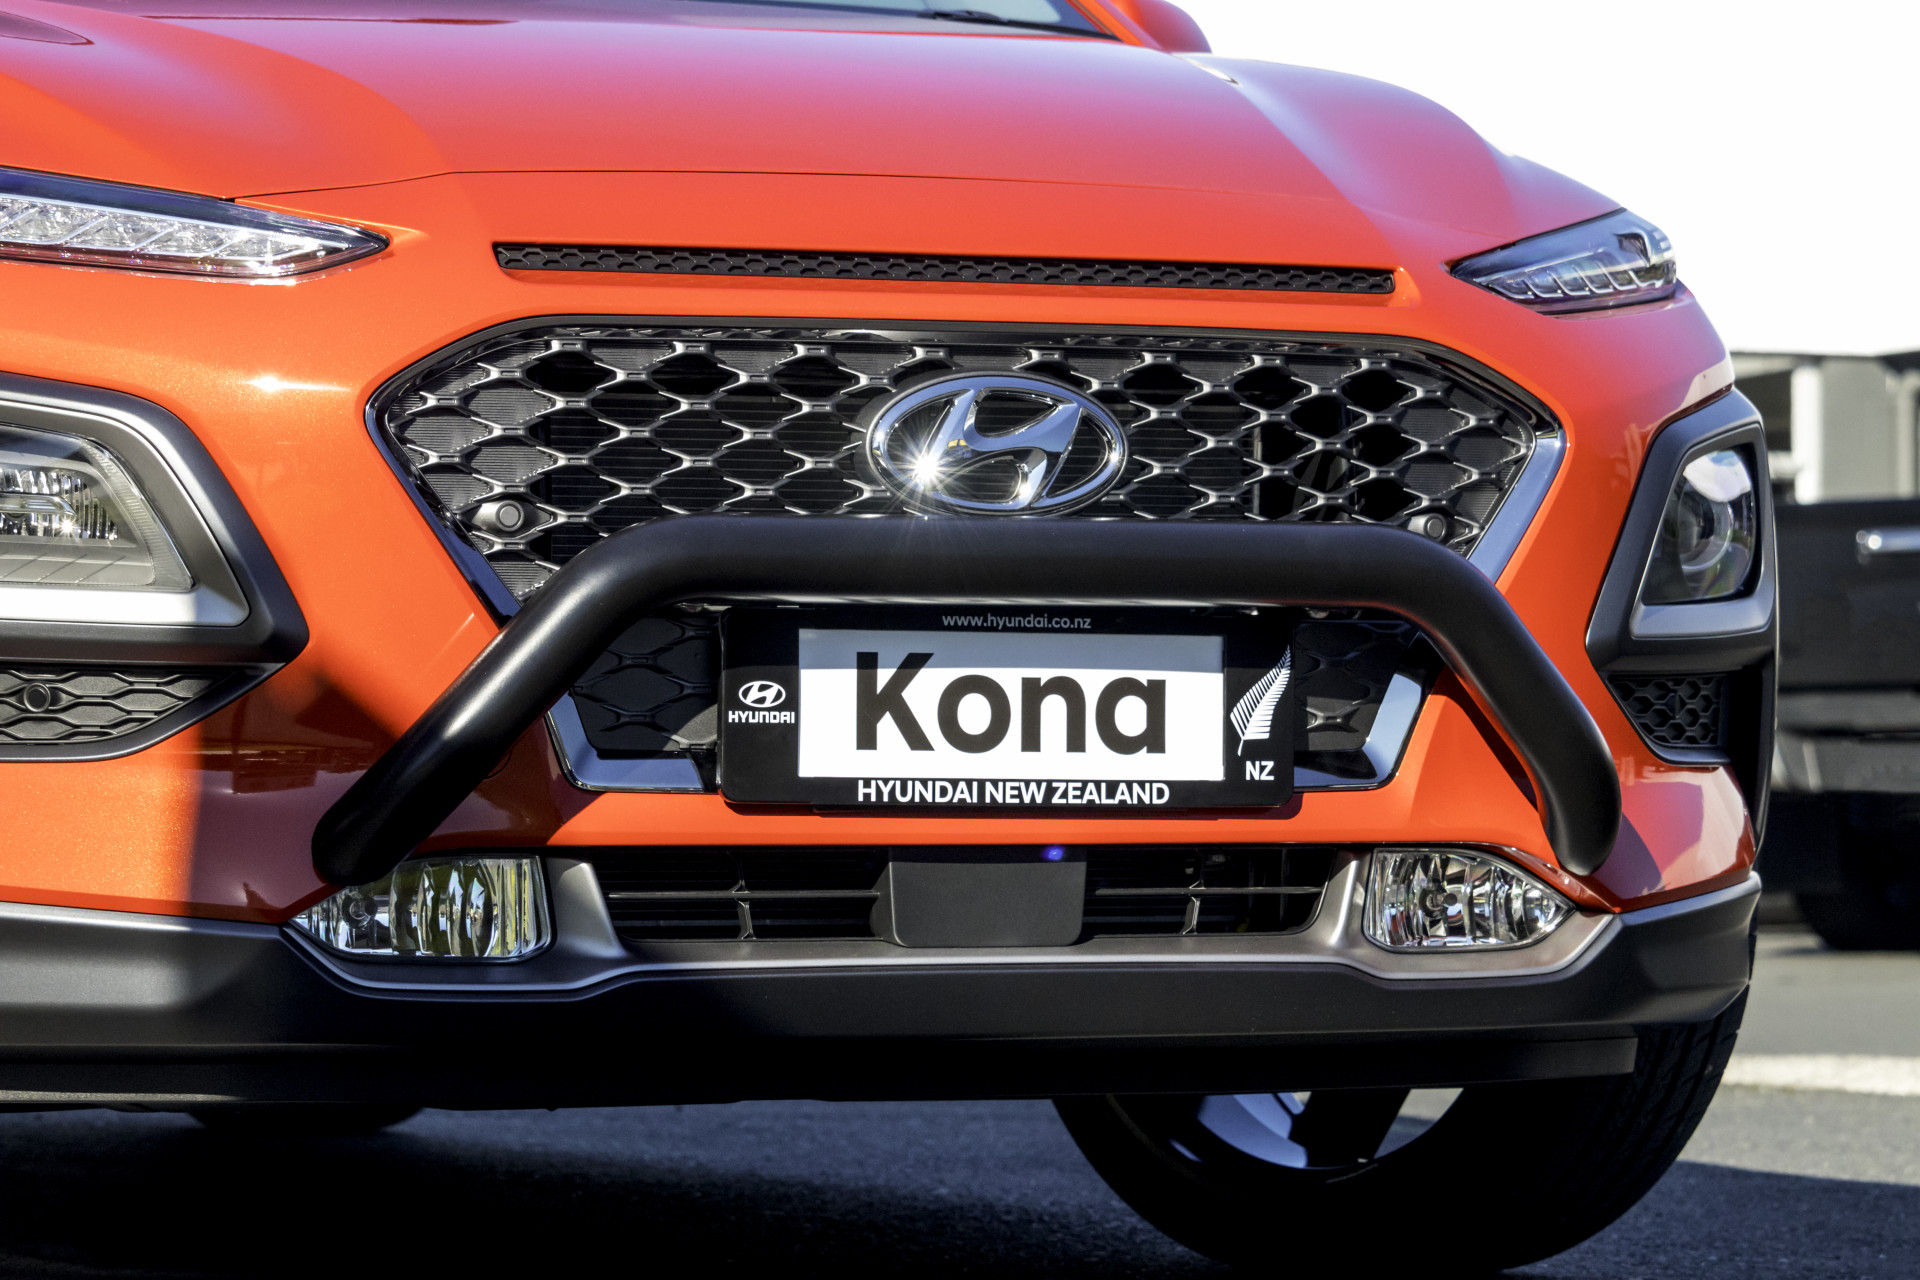 Hyundai Santa Fe Towing Capacity >> Kona Urban SUV Accessories | Cooke Howlison Hyundai